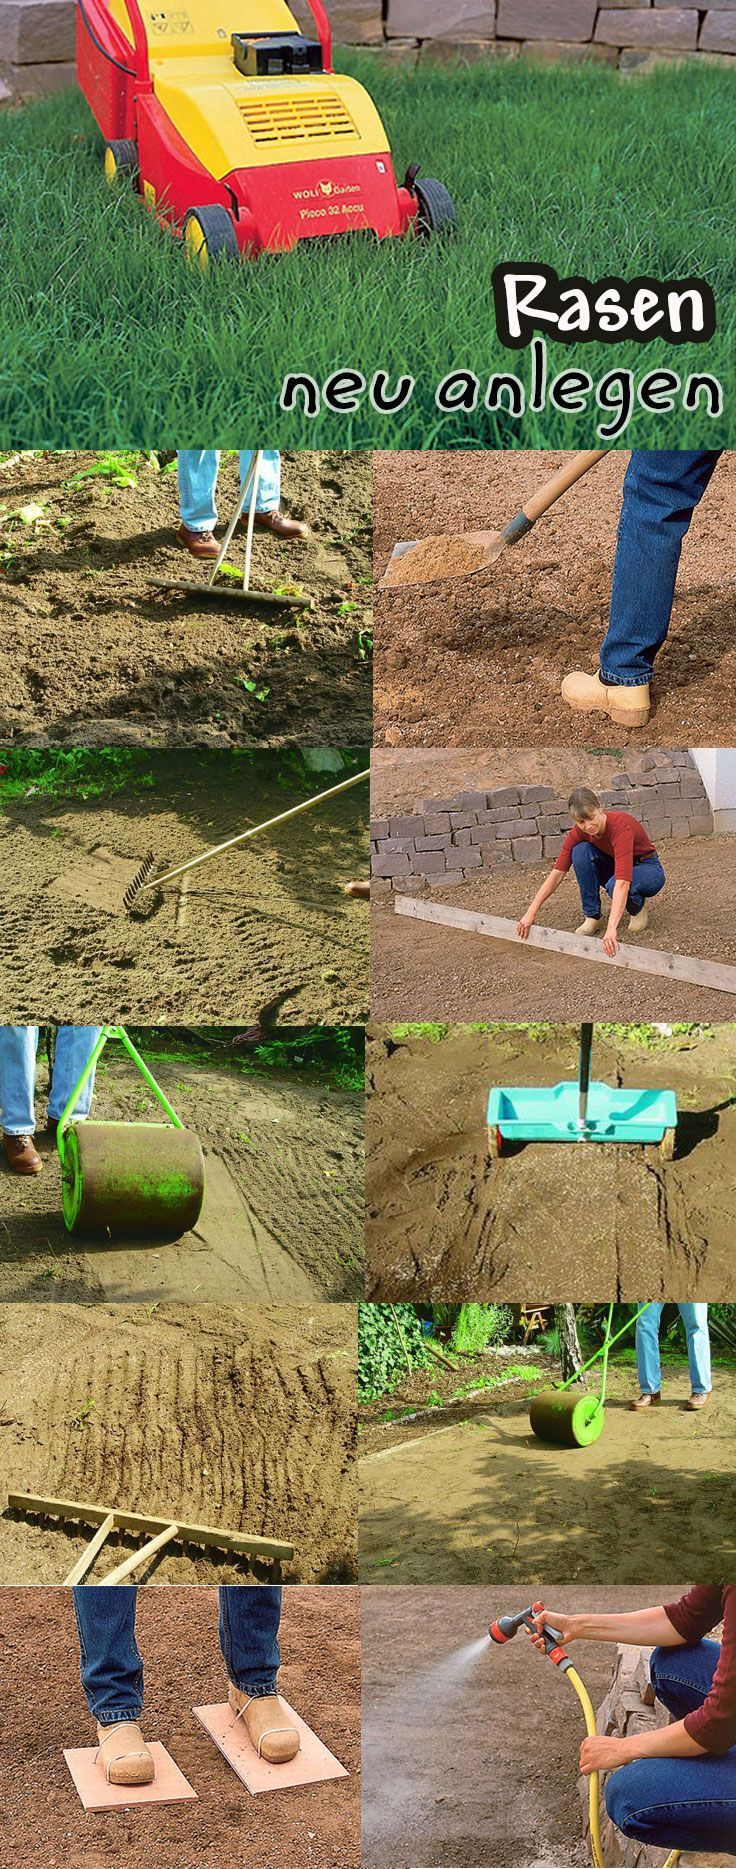 Design#5001381: 25+ best ideas about diy ideen garten on pinterest | garten ideen .... Kreative Gartendesigns Rasen